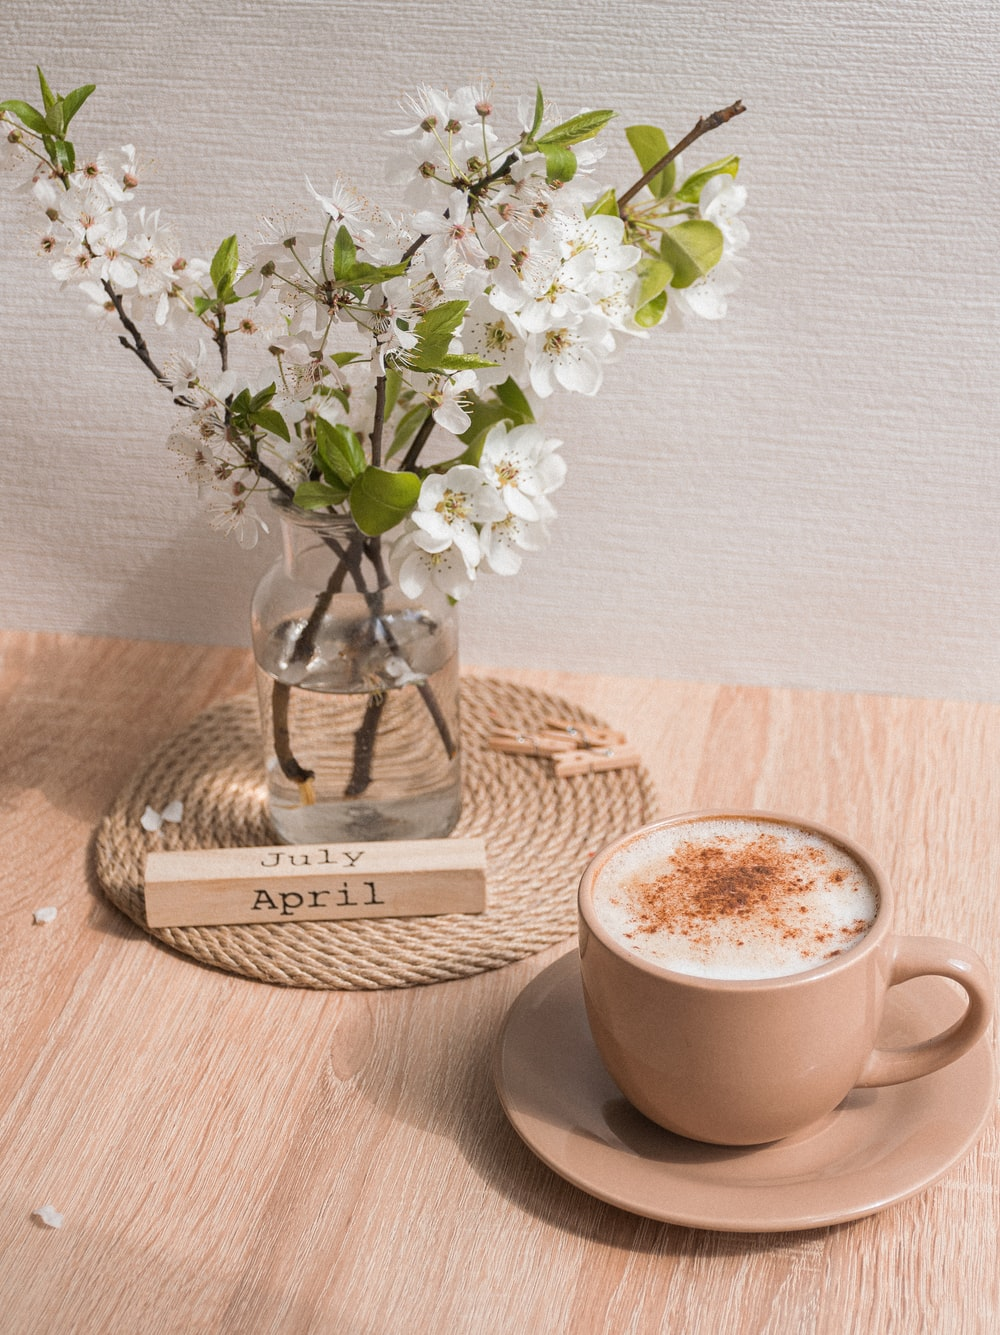 white ceramic cup with coffee on brown wooden coaster